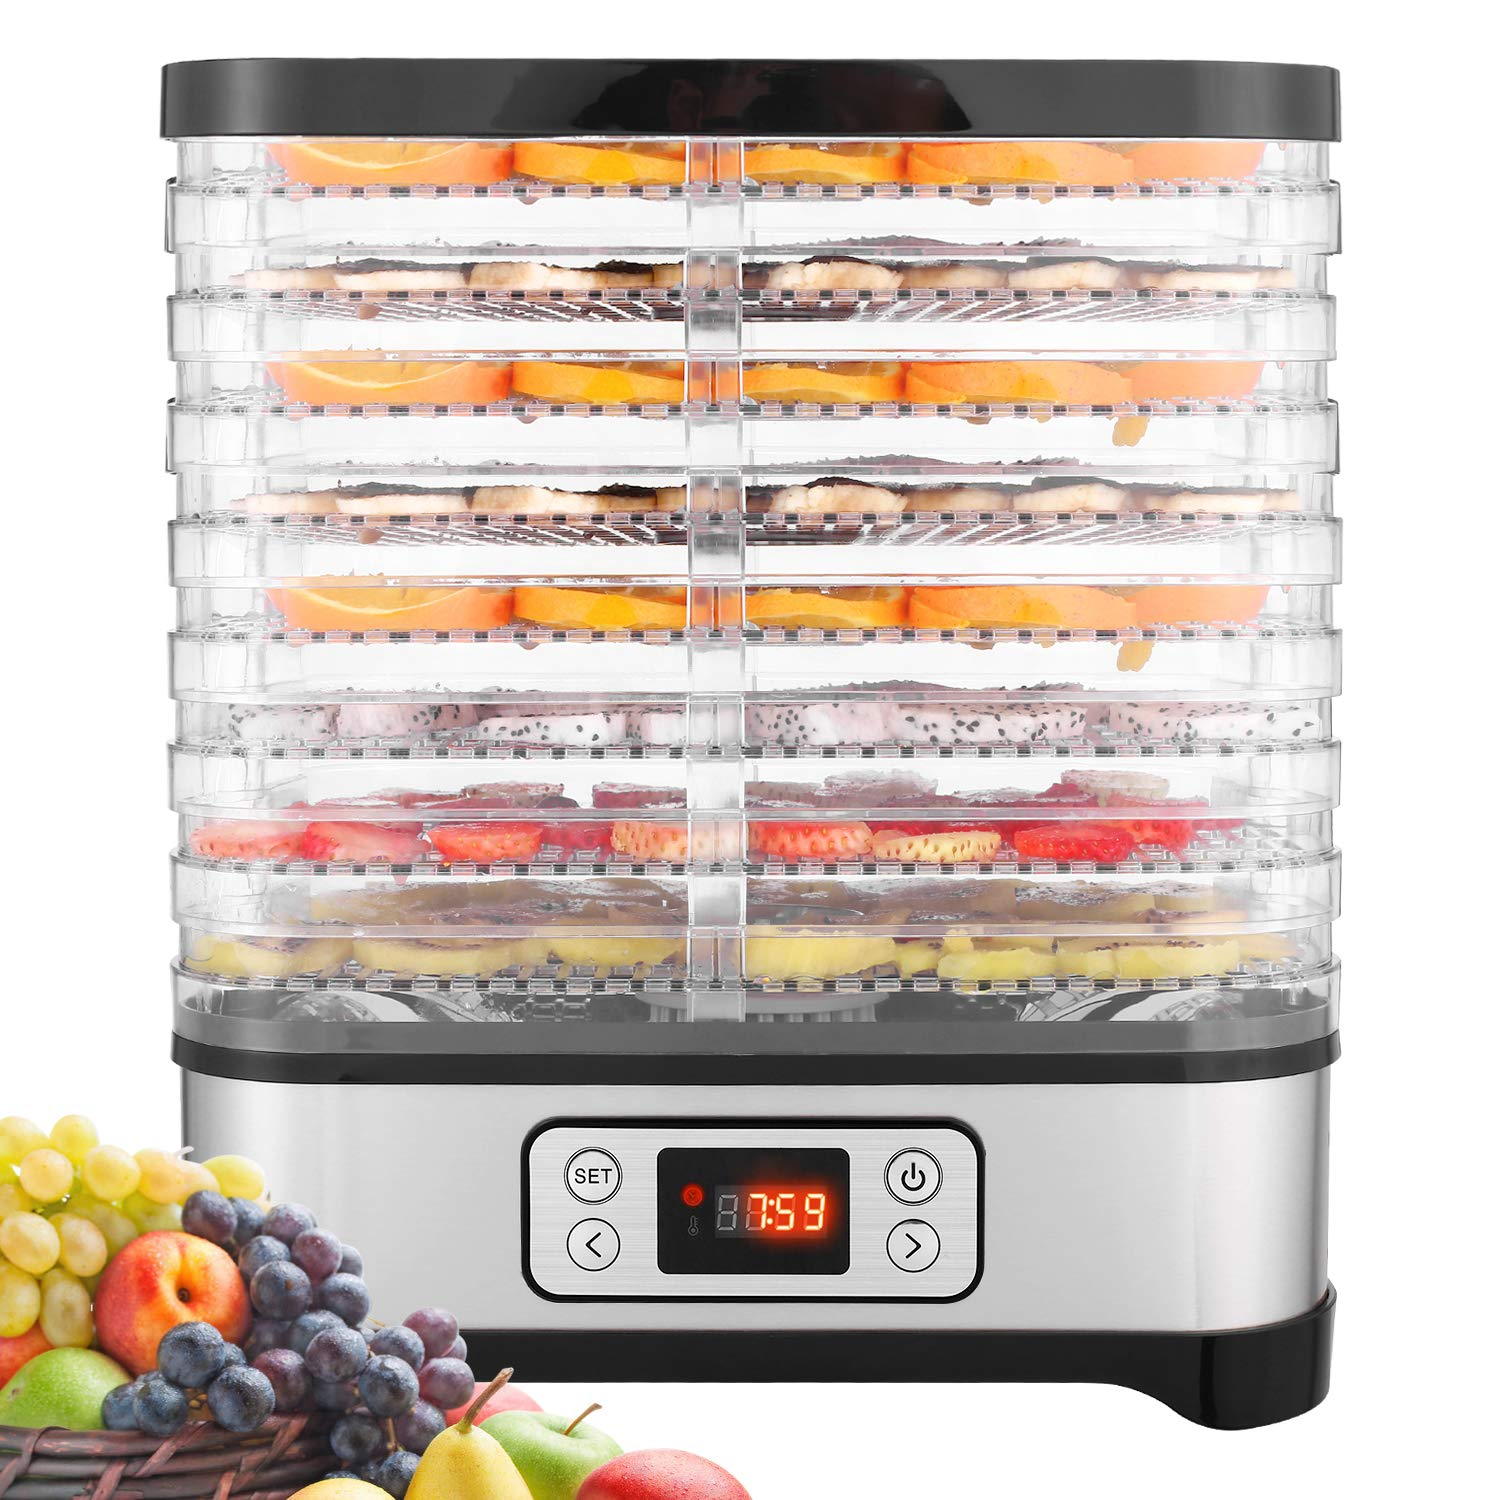 Electric Food Dehydrator Machine for Jerky, Fruits, Vegetables, Herbs with 8 Trays, Digital Timer, Temperature Control 400 Watt